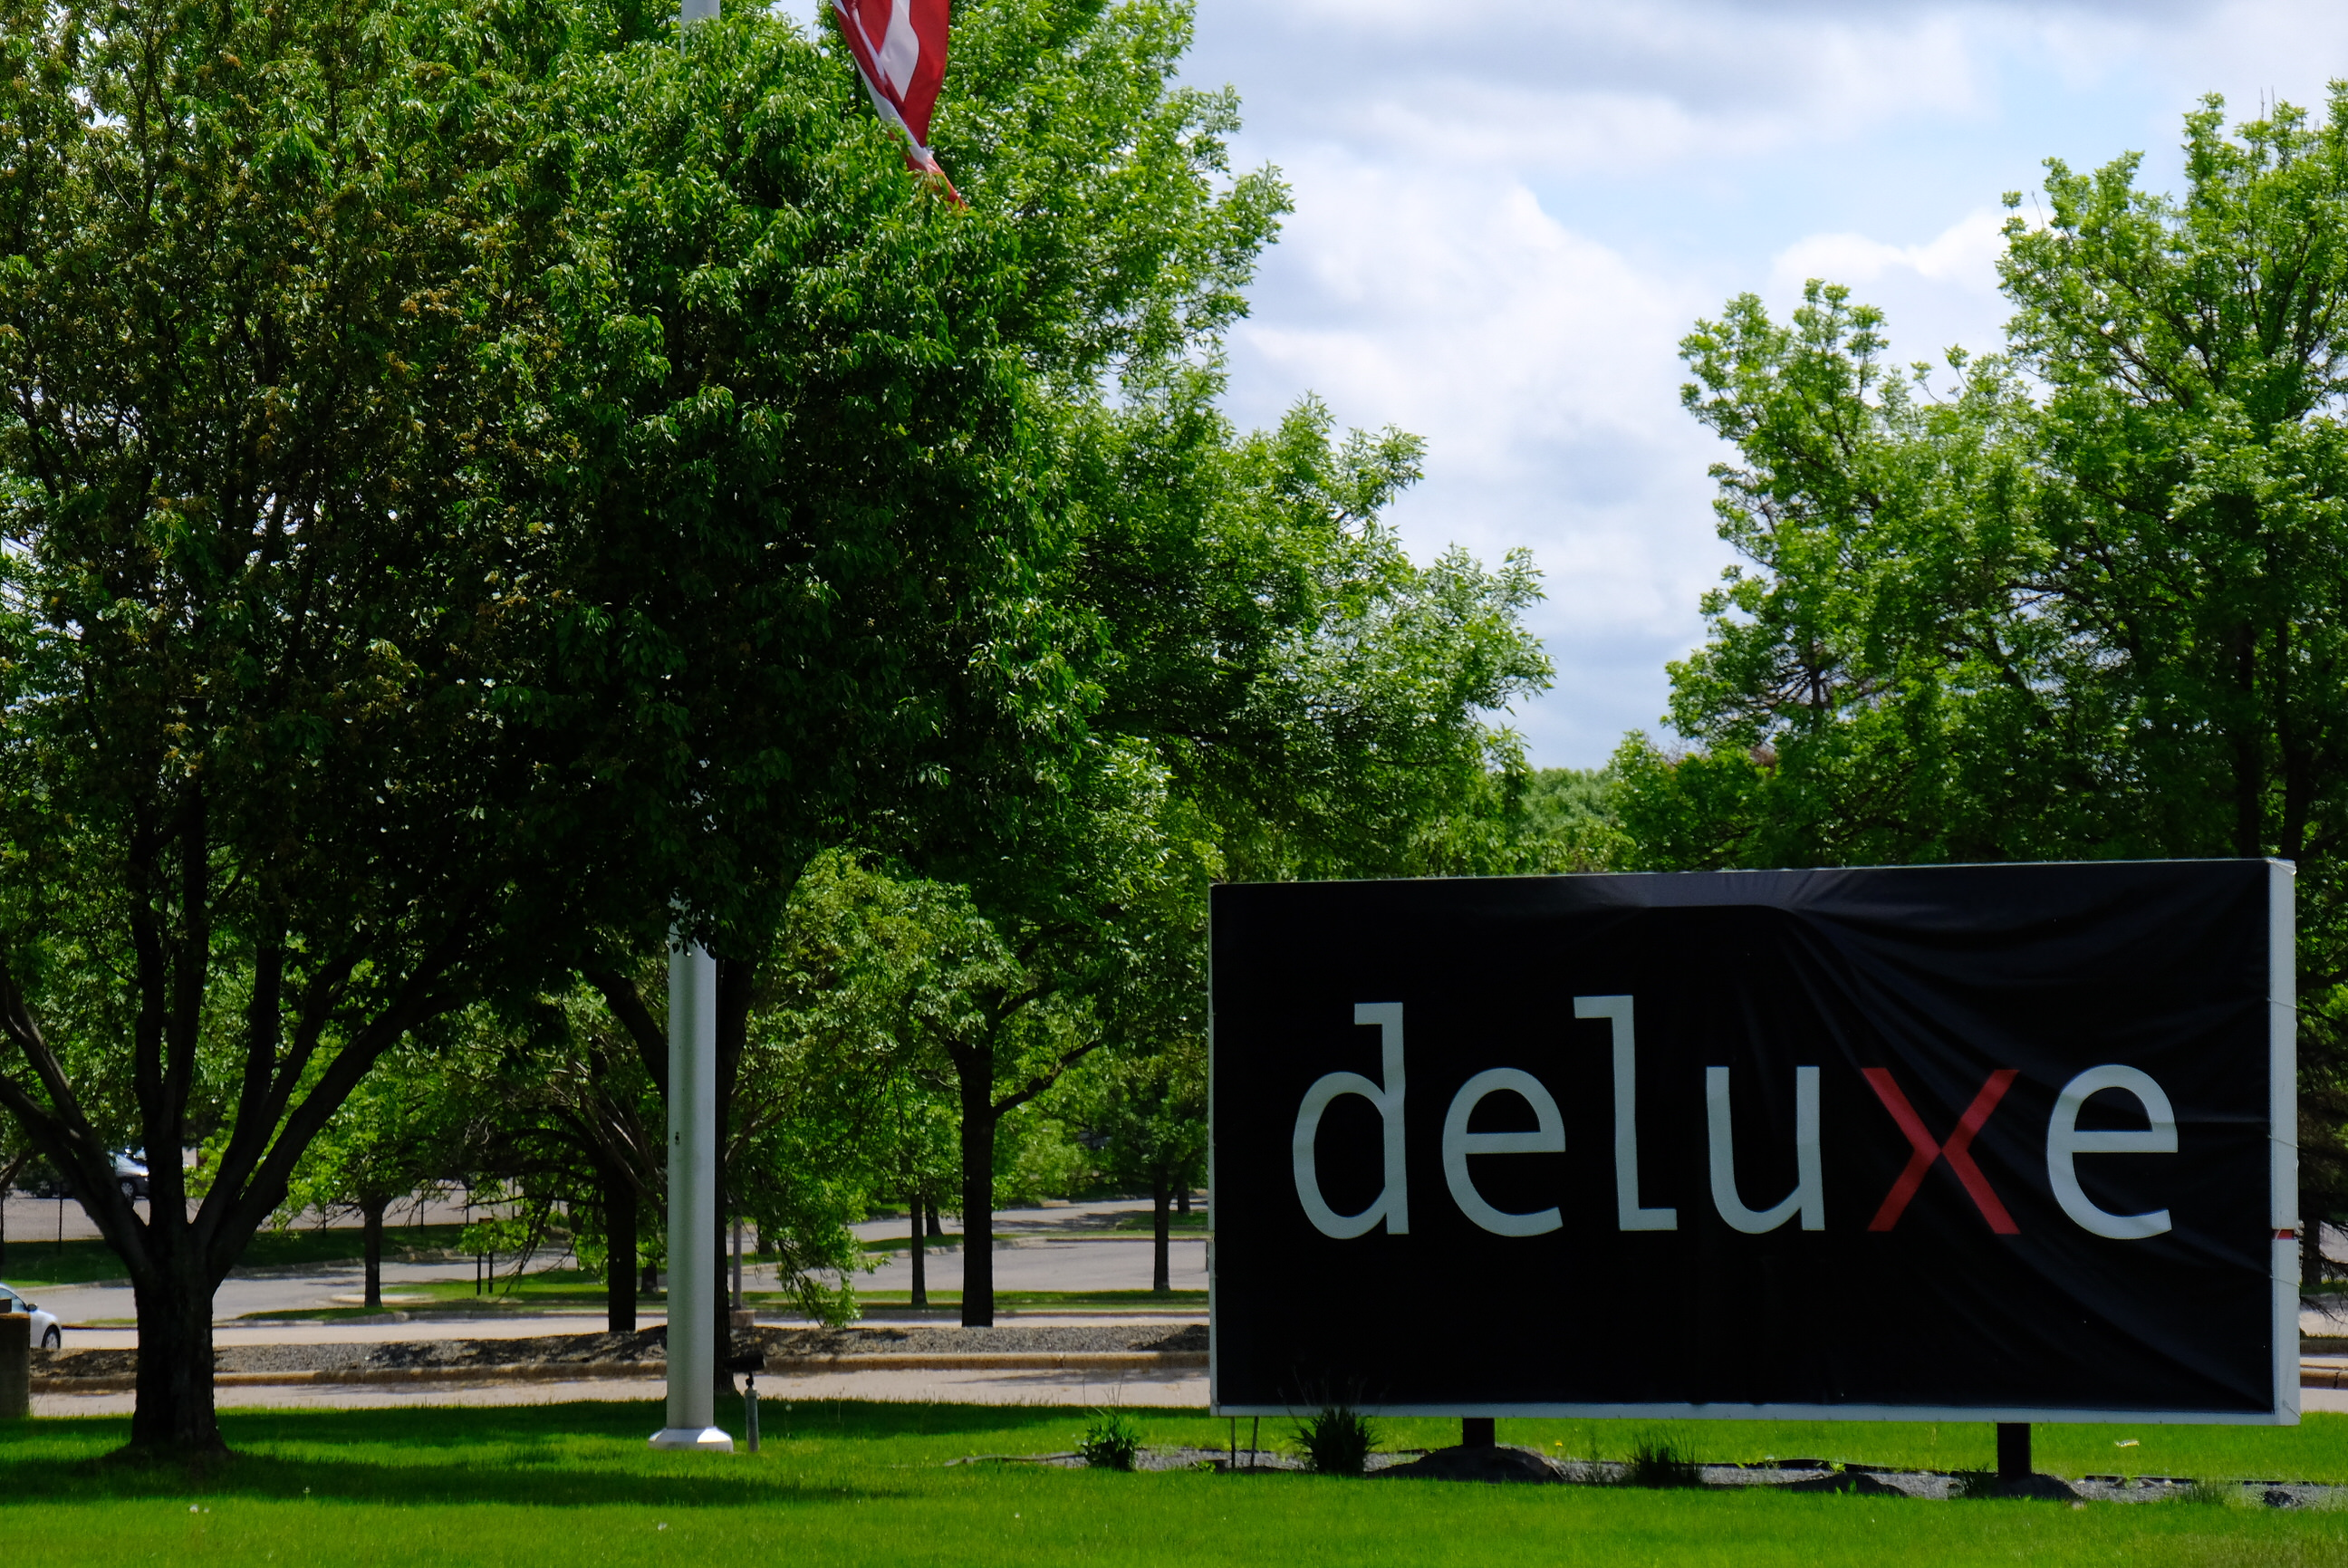 Entrance to Deluxe's corporate headquarters in Shoreview, Minnesota.